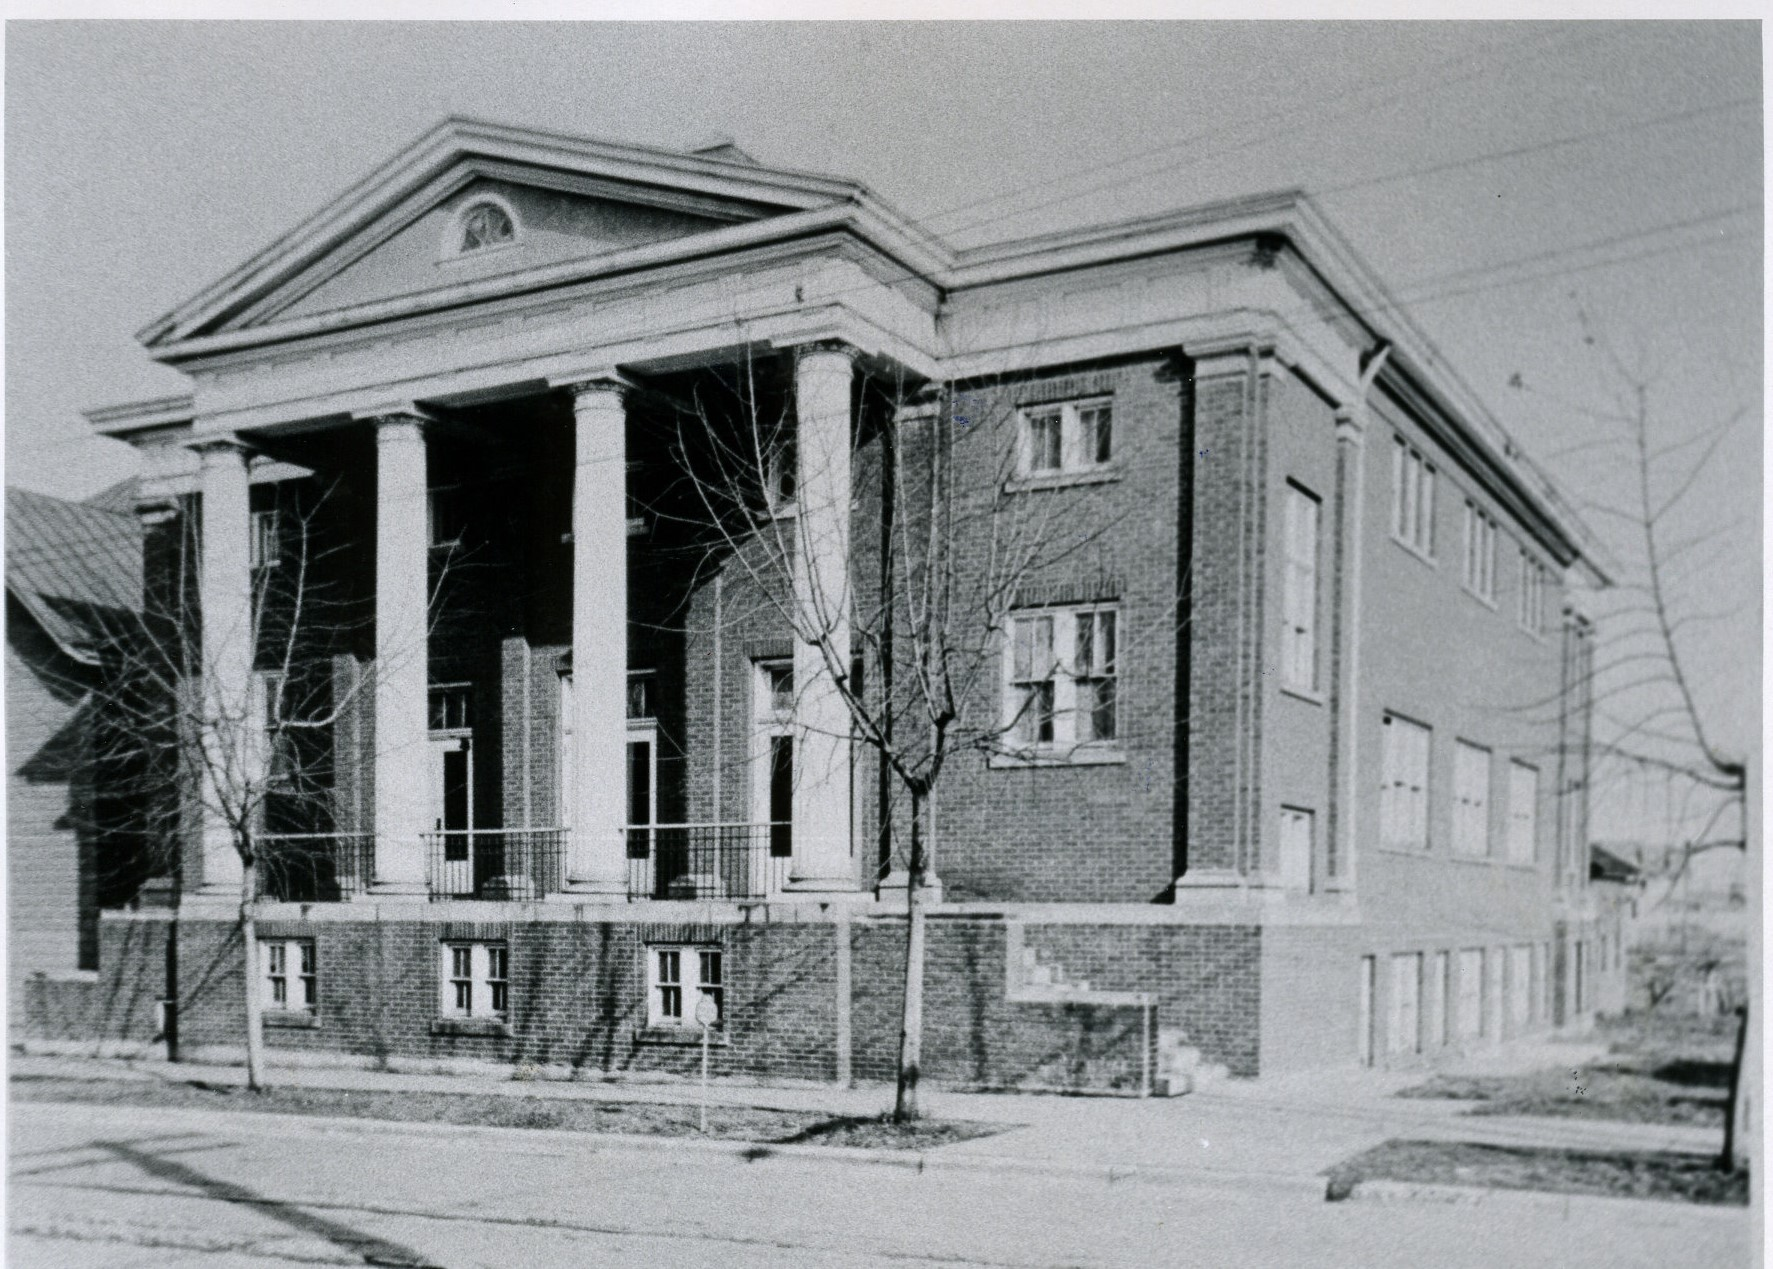 The current building sometime after its completion in 1926. Courtesy of the Kenova Historical Commission.